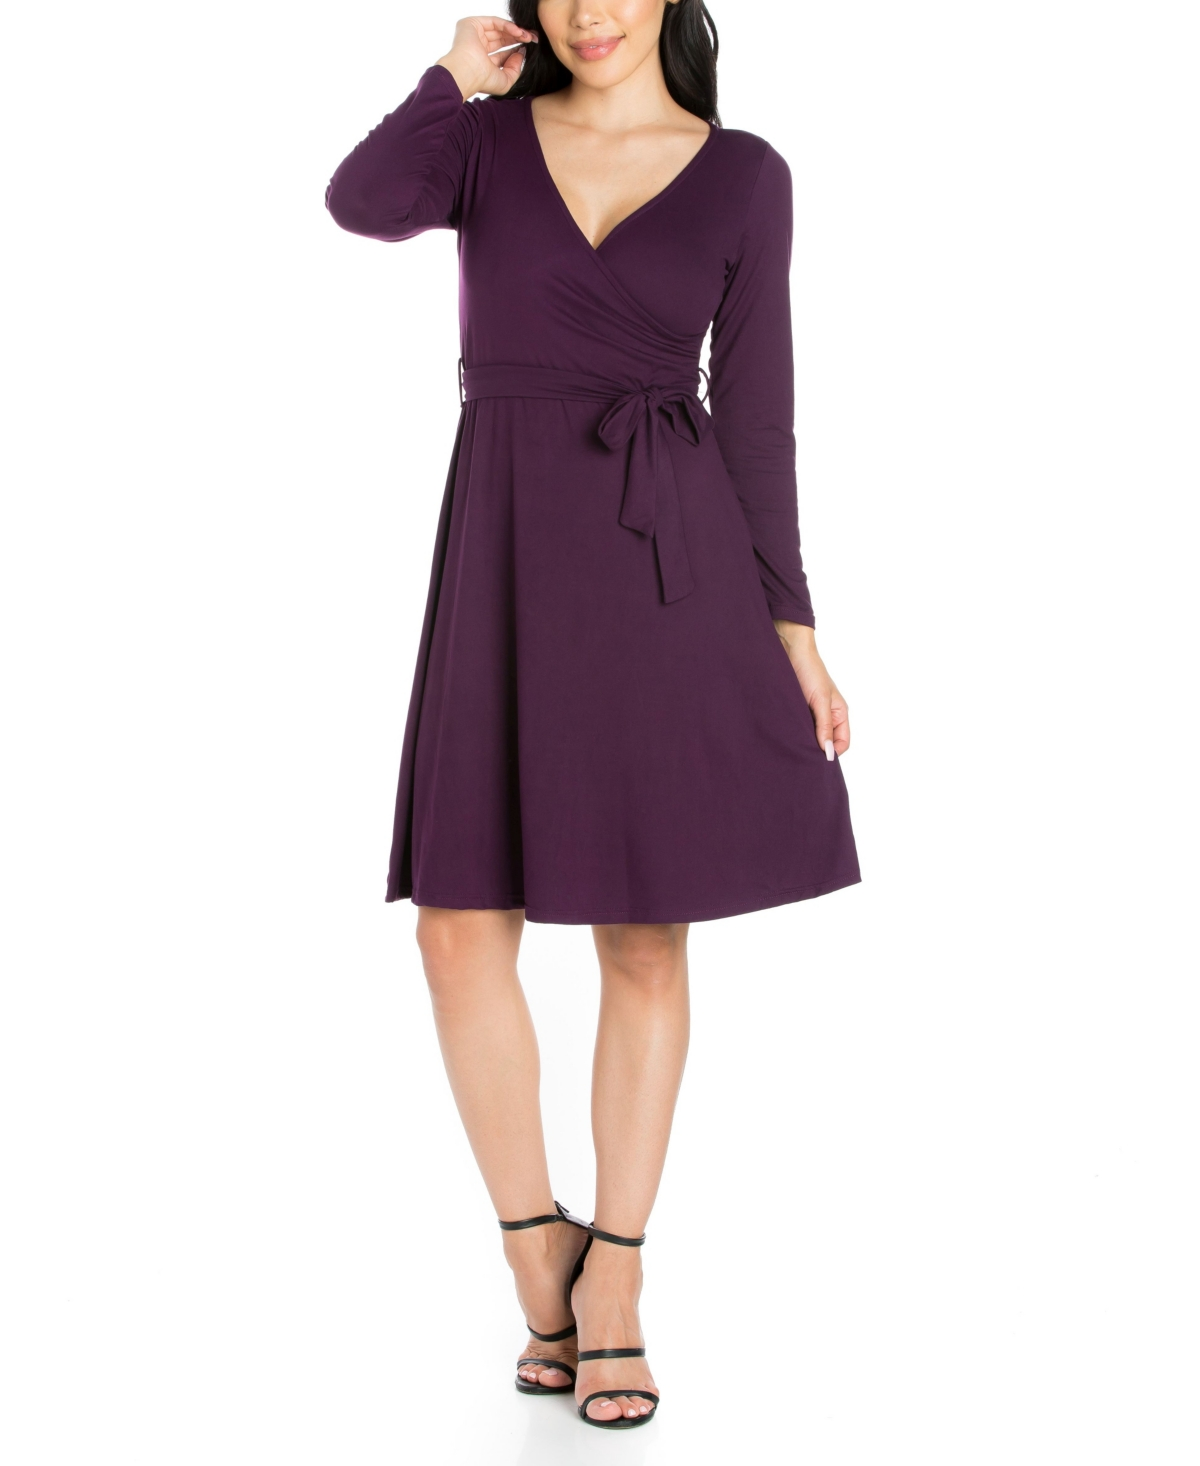 Womens Chic V-Neck Long Sleeve Belted Dress